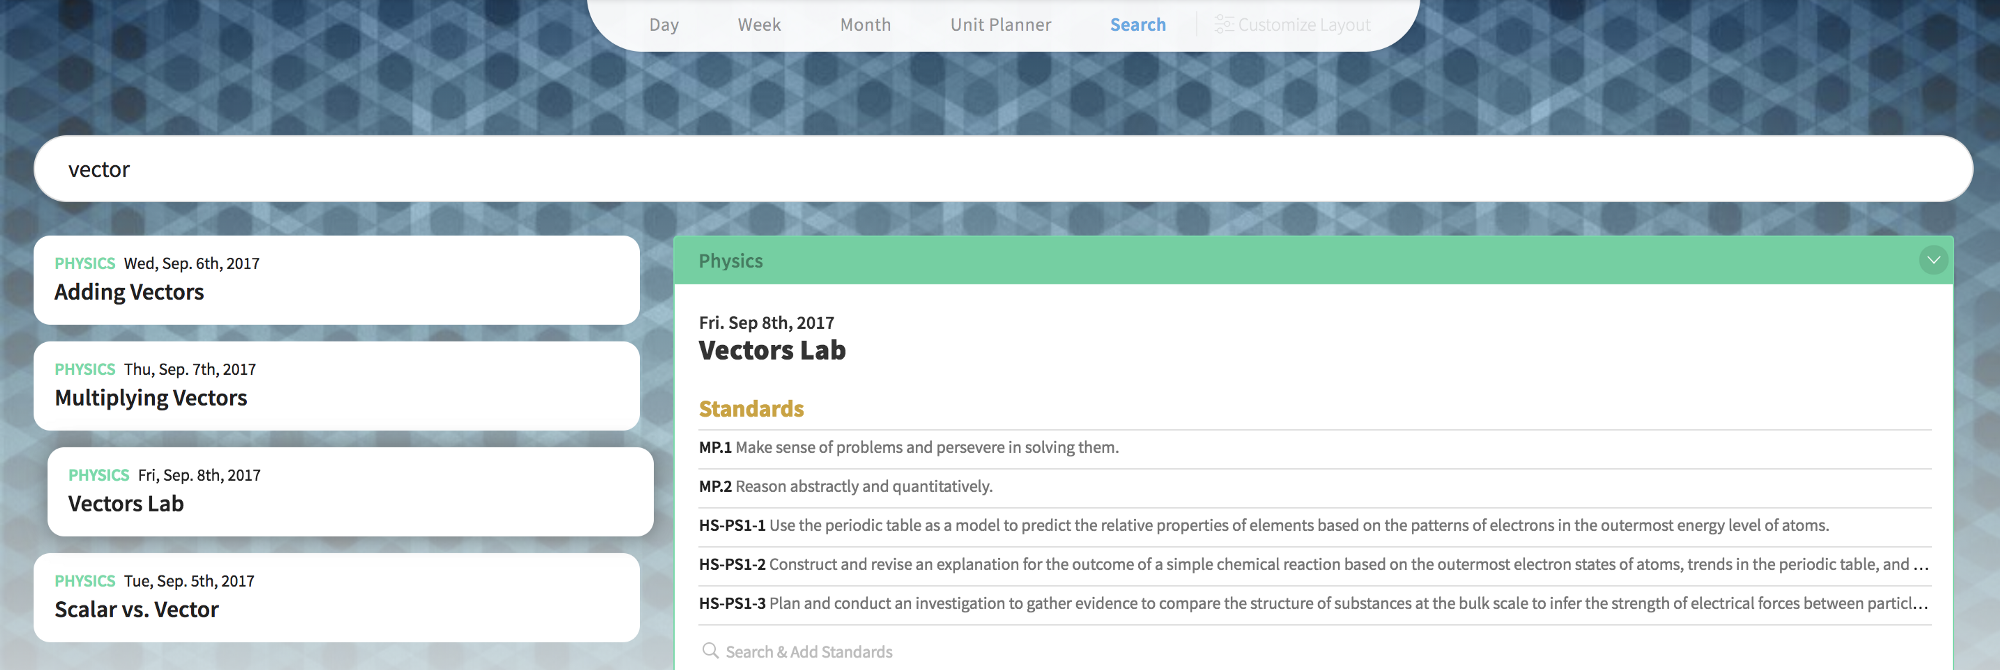 New Feature Alert Search Lesson Plans Common Curriculum